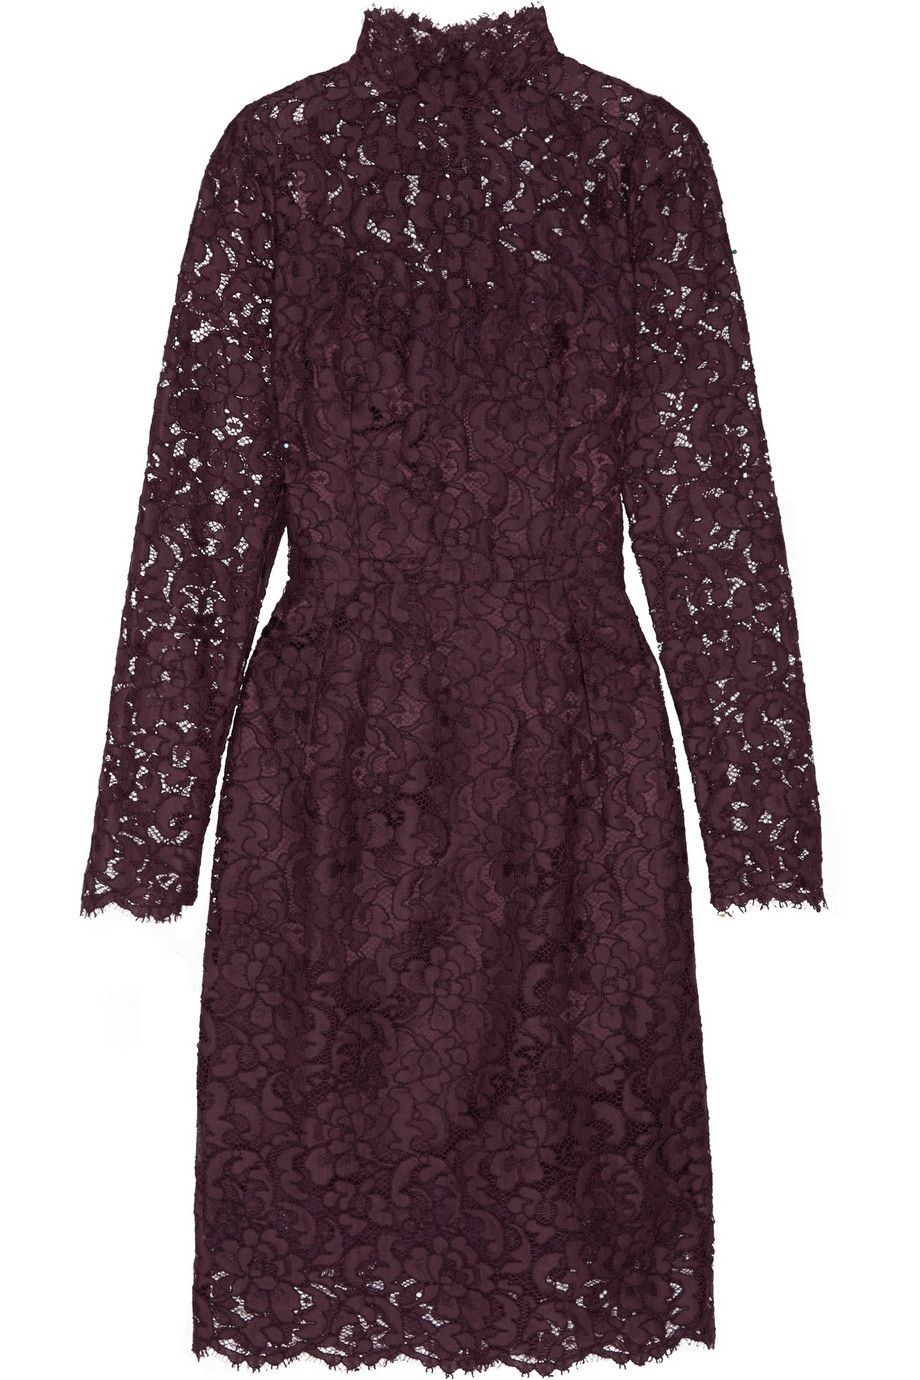 21 Dresses to Wear to a Winter Wedding   Lace dress, Clothes and ...